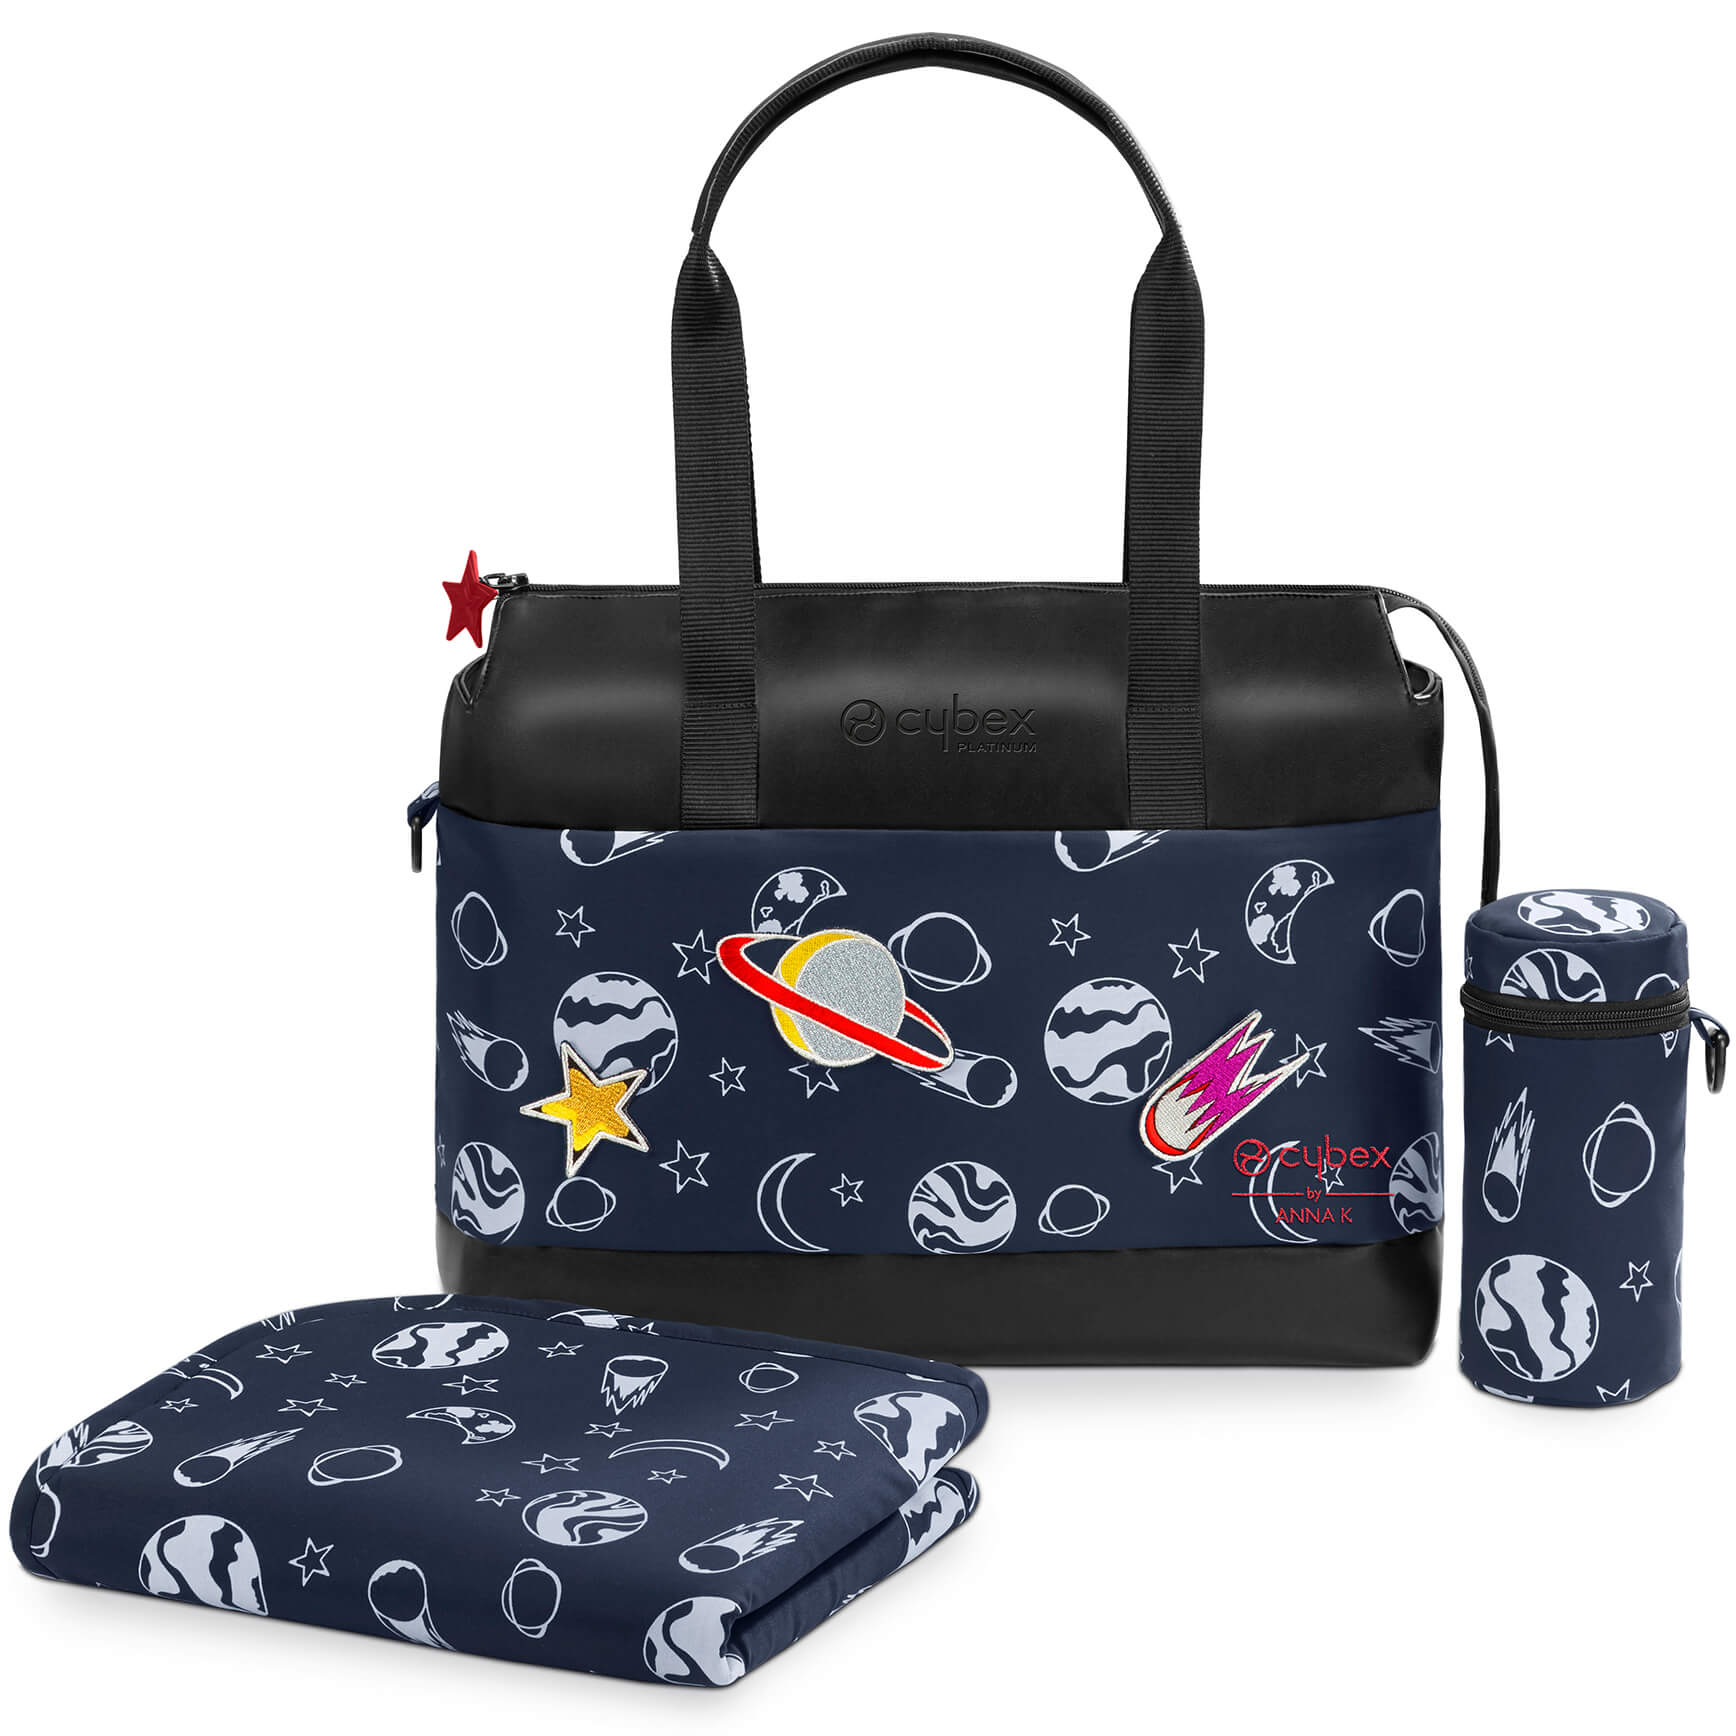 8f034880aeb8 Cybex Priam Changing Bag - Space Rocket navy blue by Anna K. Tap to expand